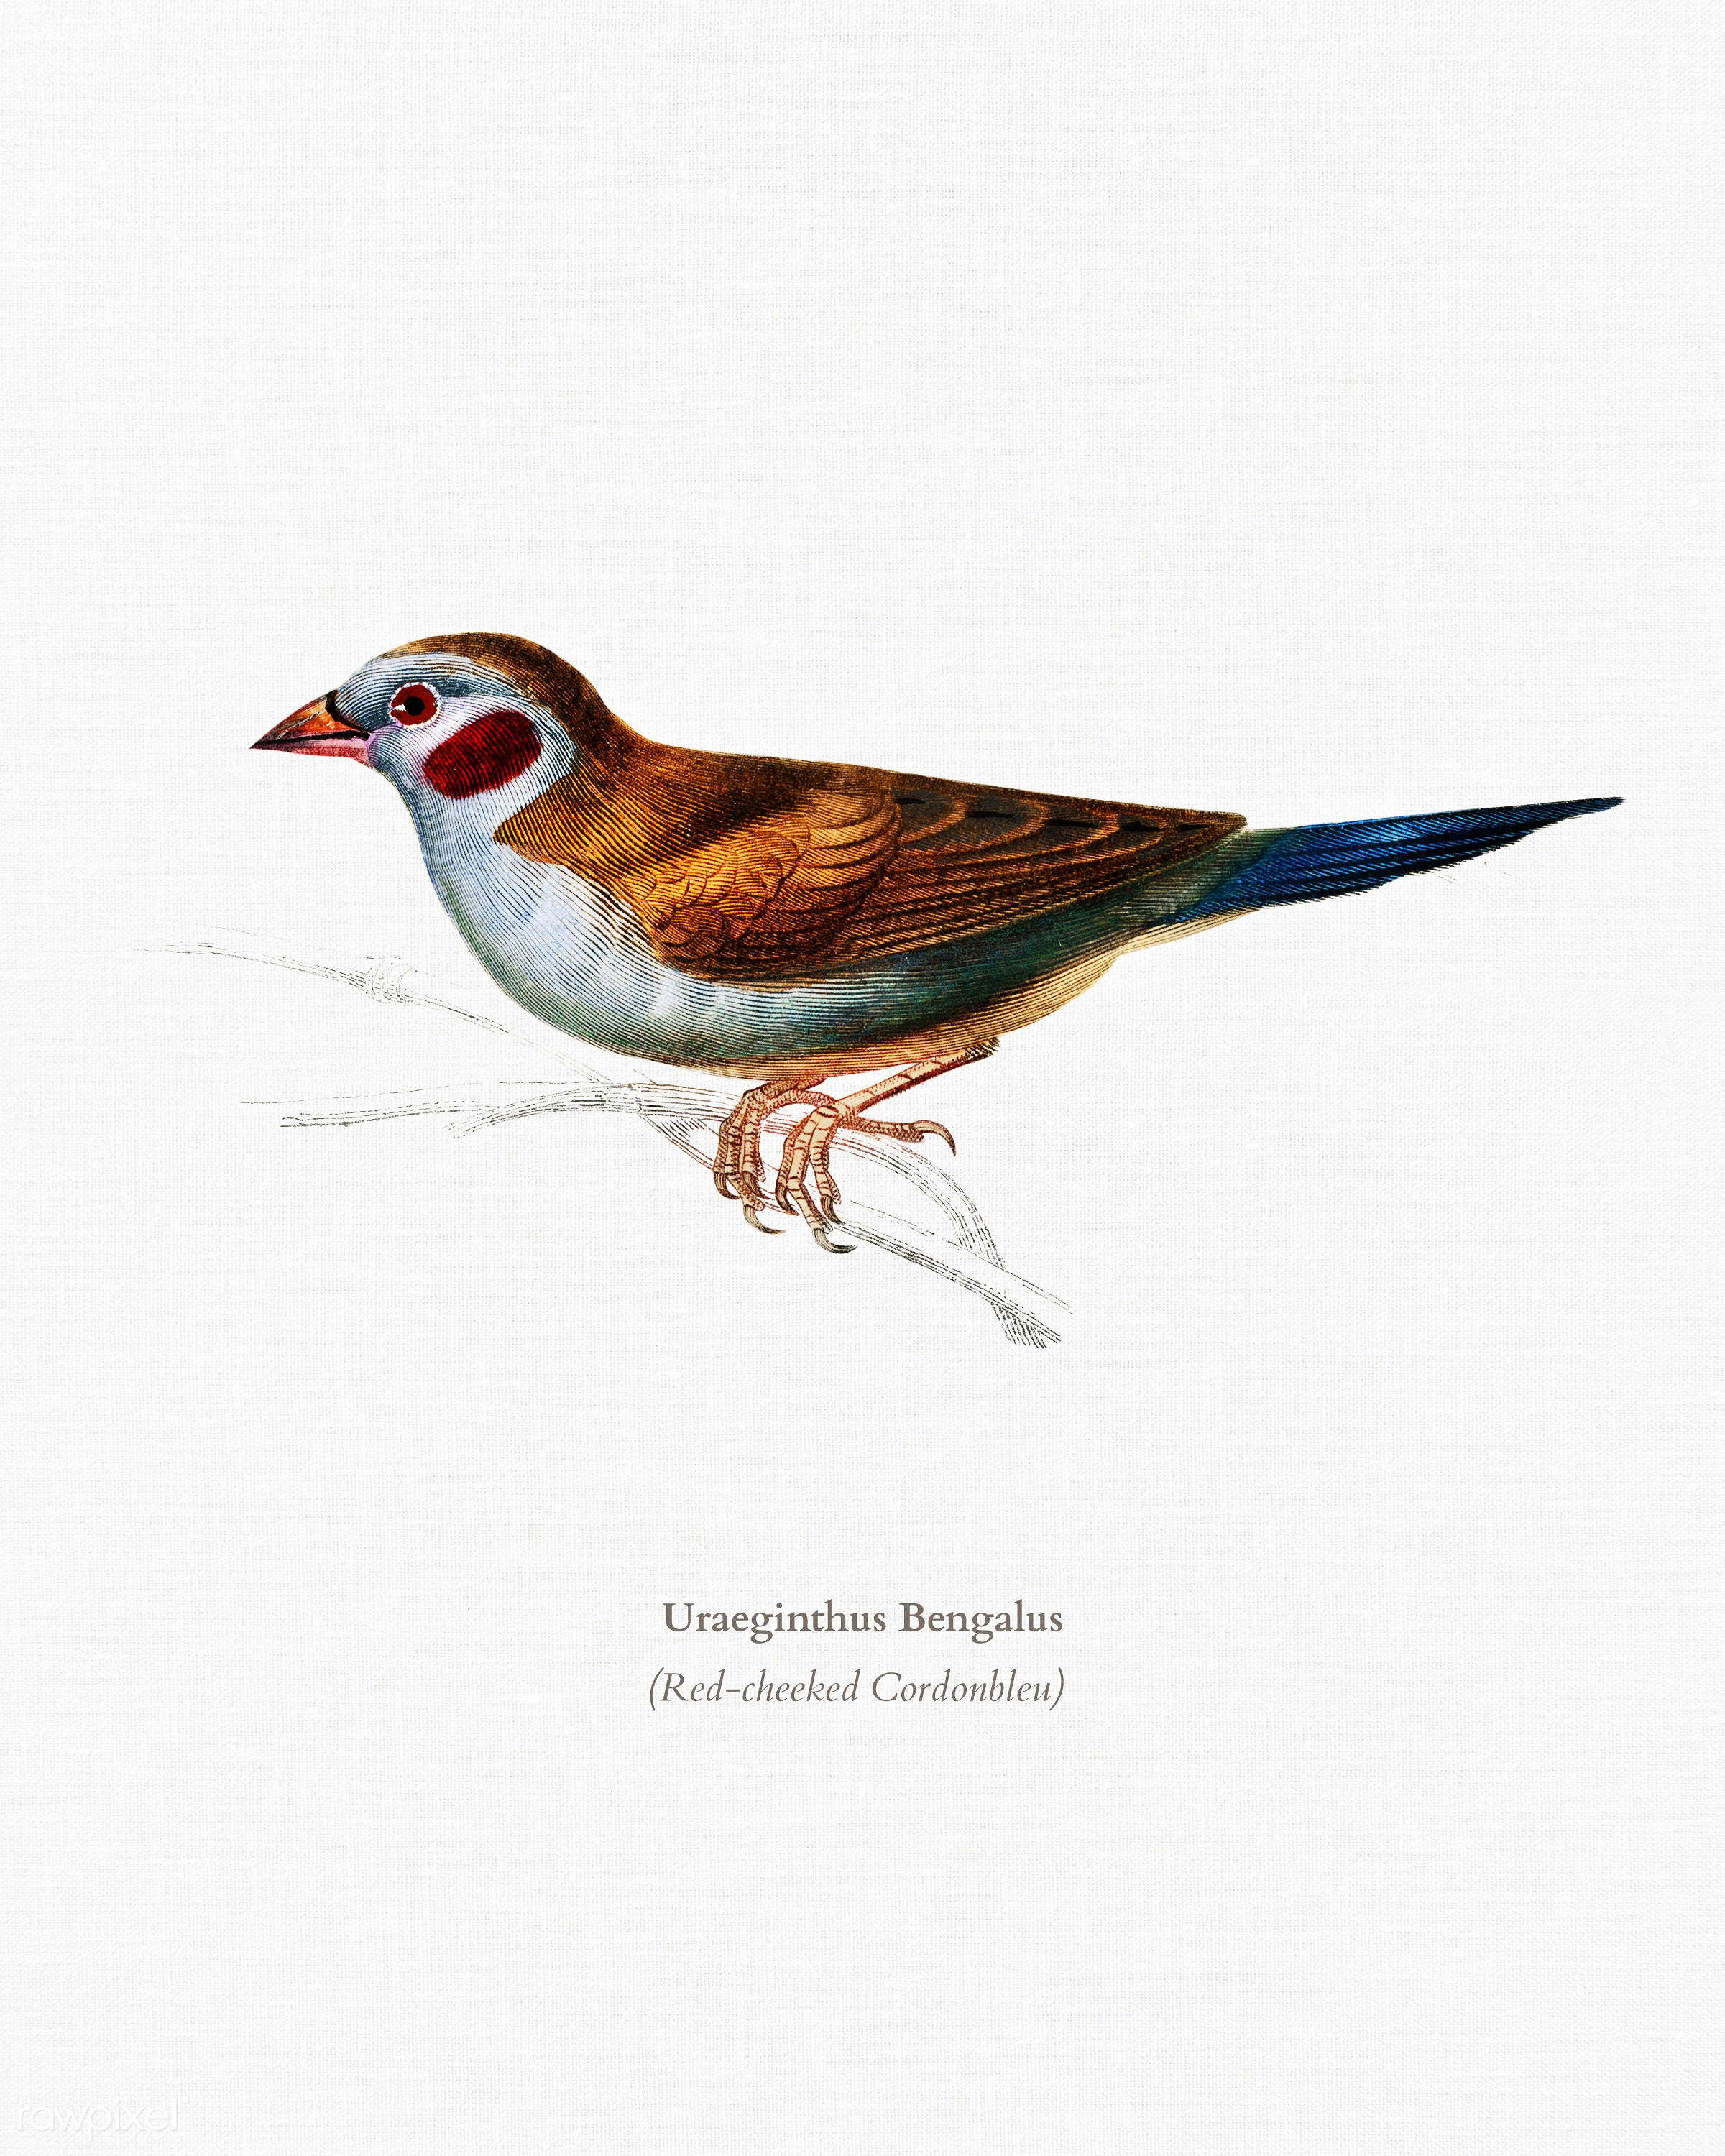 Red-cheeked Cordonbleu (Uraeginthus Bengalus) illustrated by Charles Dessalines D' Orbigny (1806-1876). Digitally...